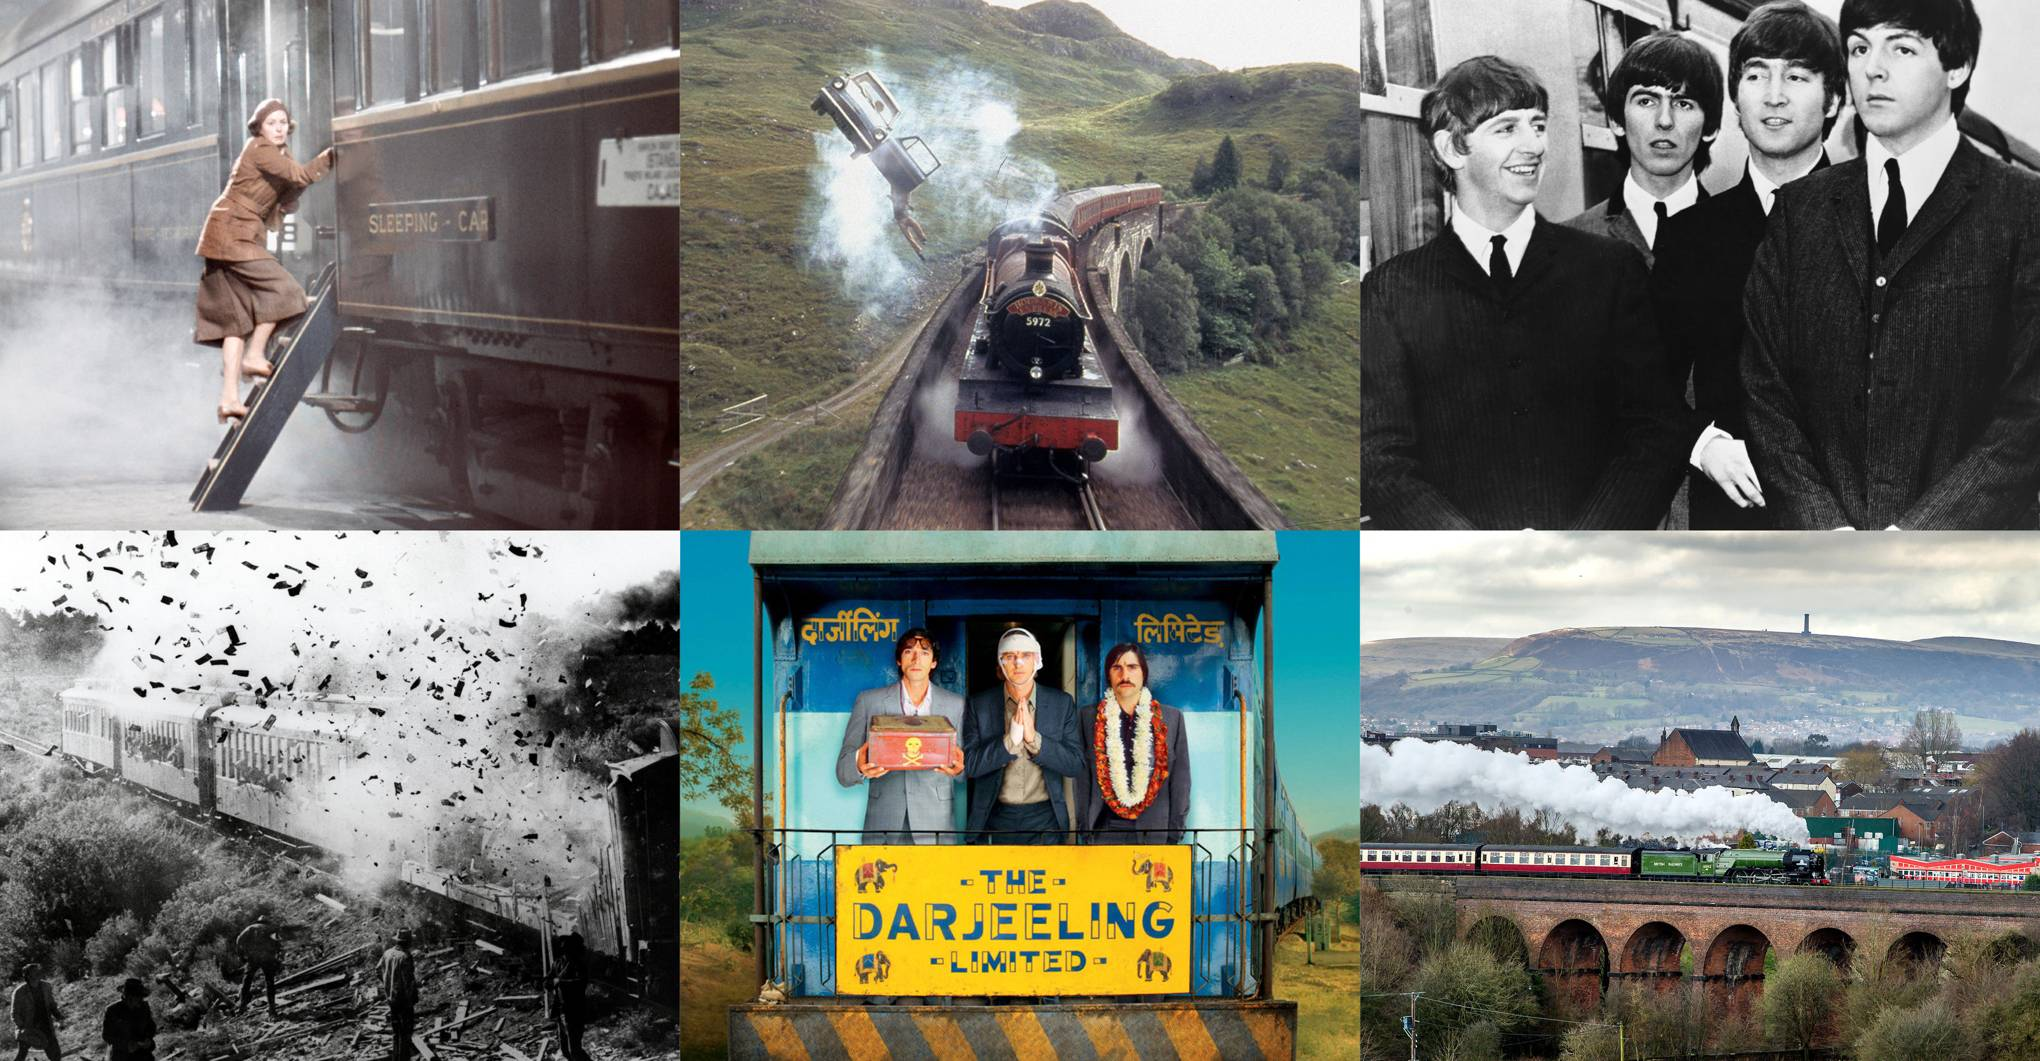 9¾ great film train rides you can enjoy in real life